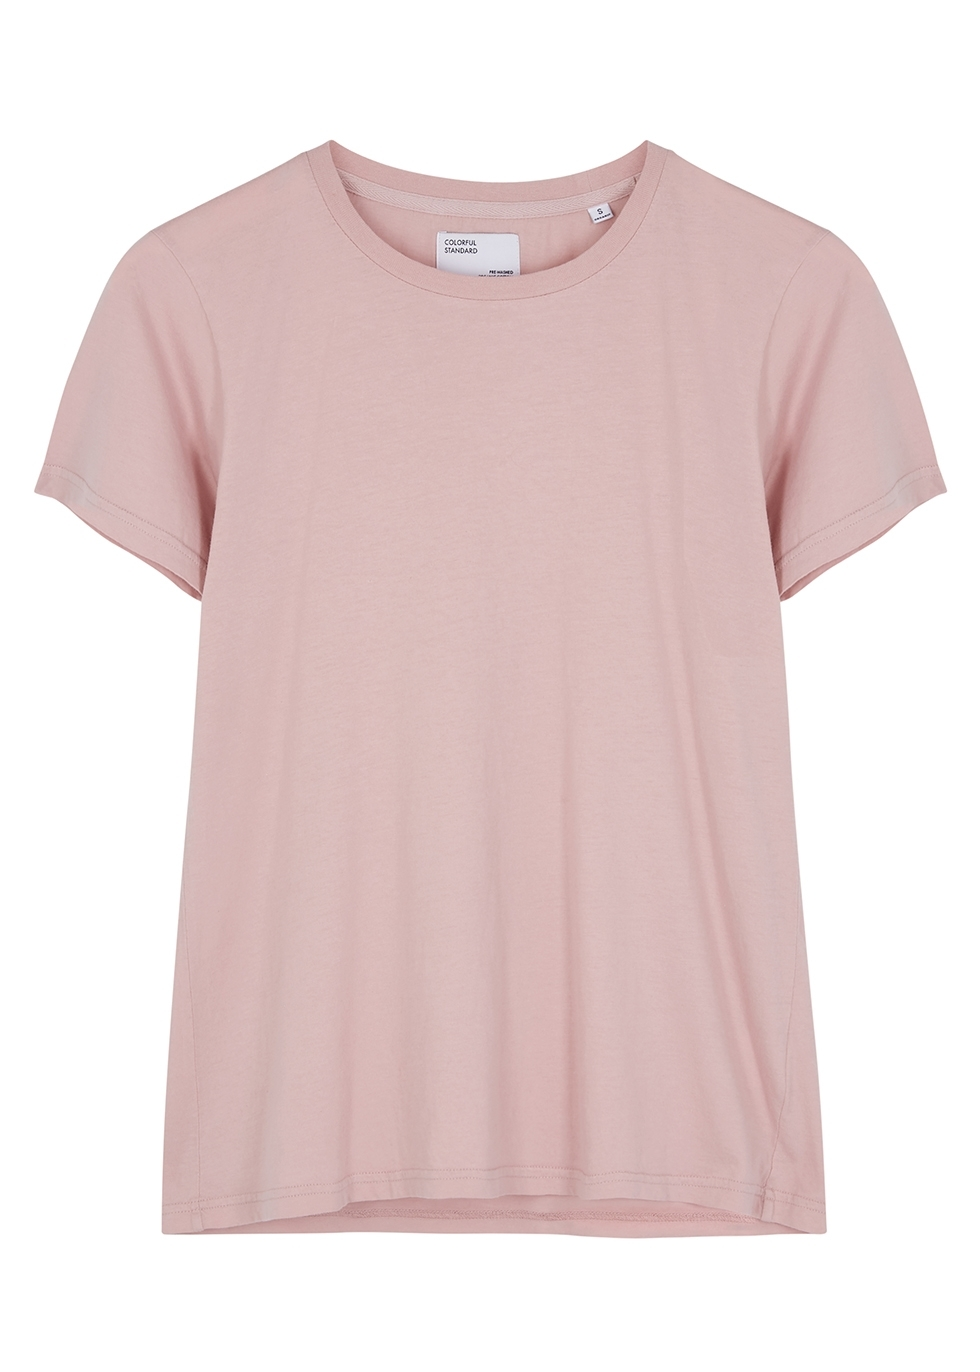 6258a73c Women's Designer T-Shirts - Cotton, Linen & Striped - Harvey Nichols